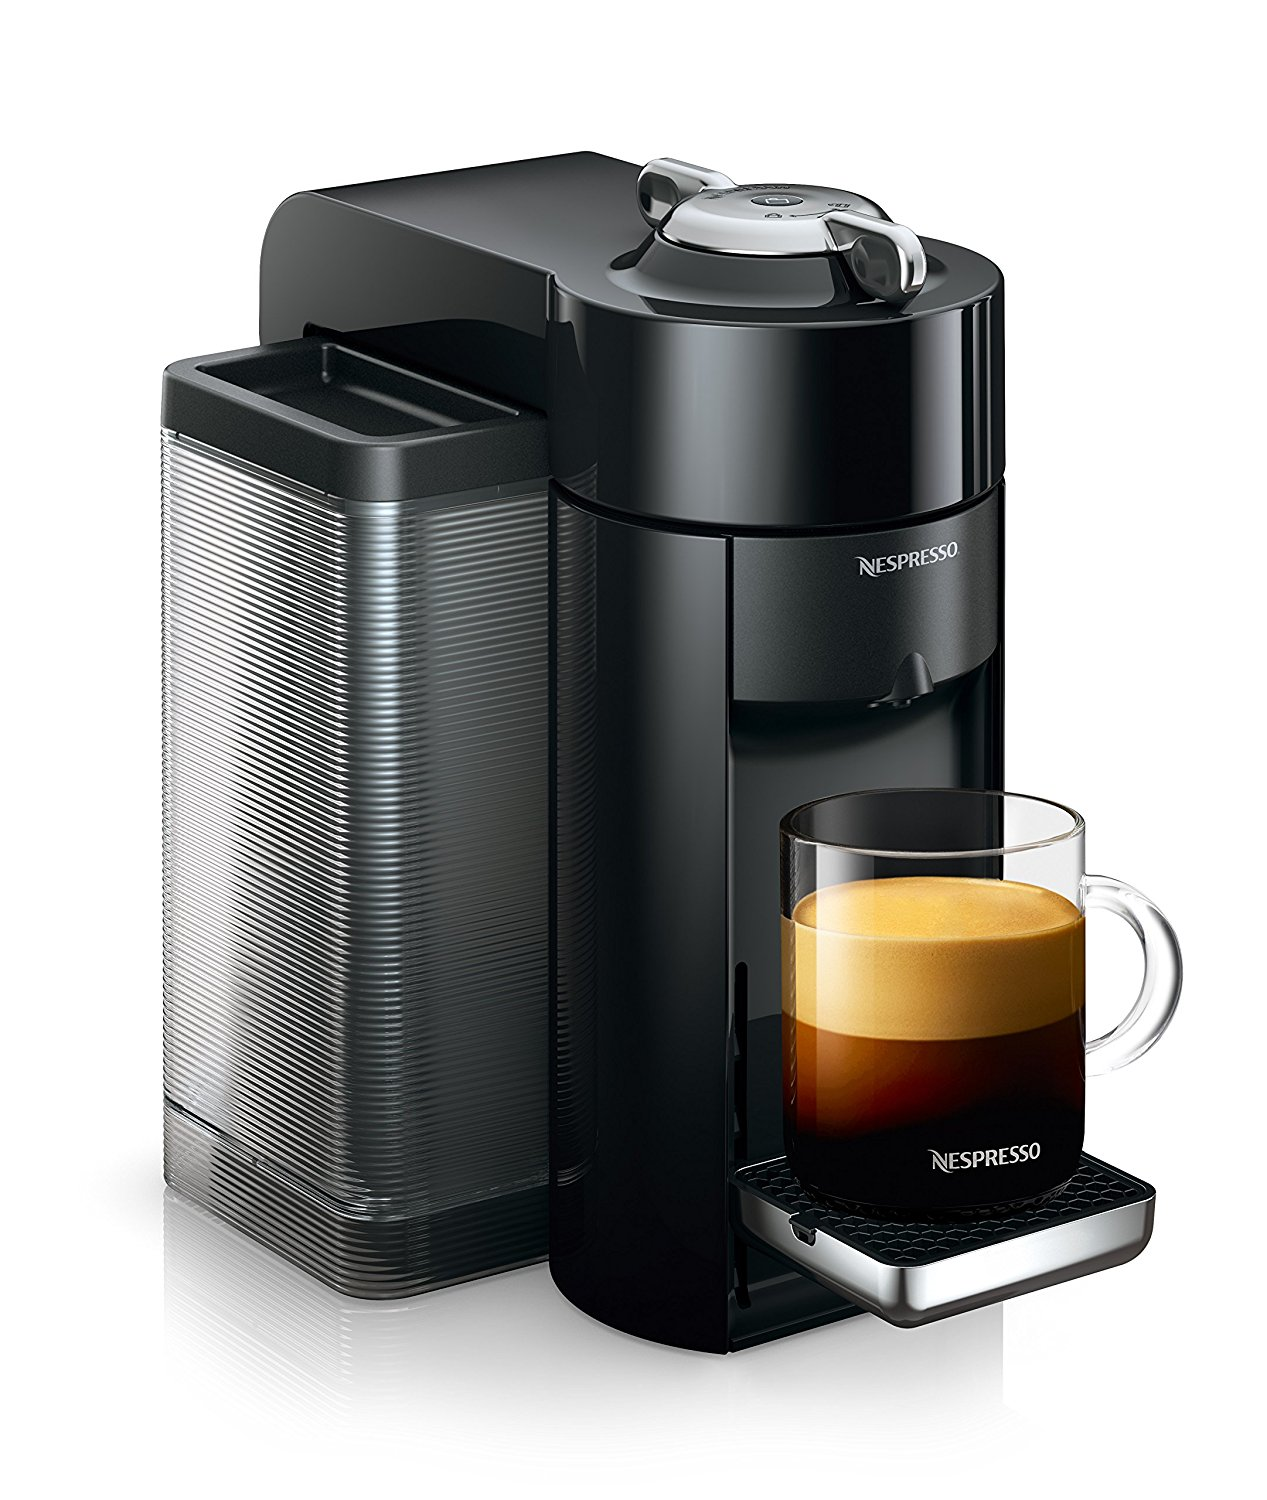 Nespresso Evoluo Vs Evoluo Deluxe Coffee Supremacy